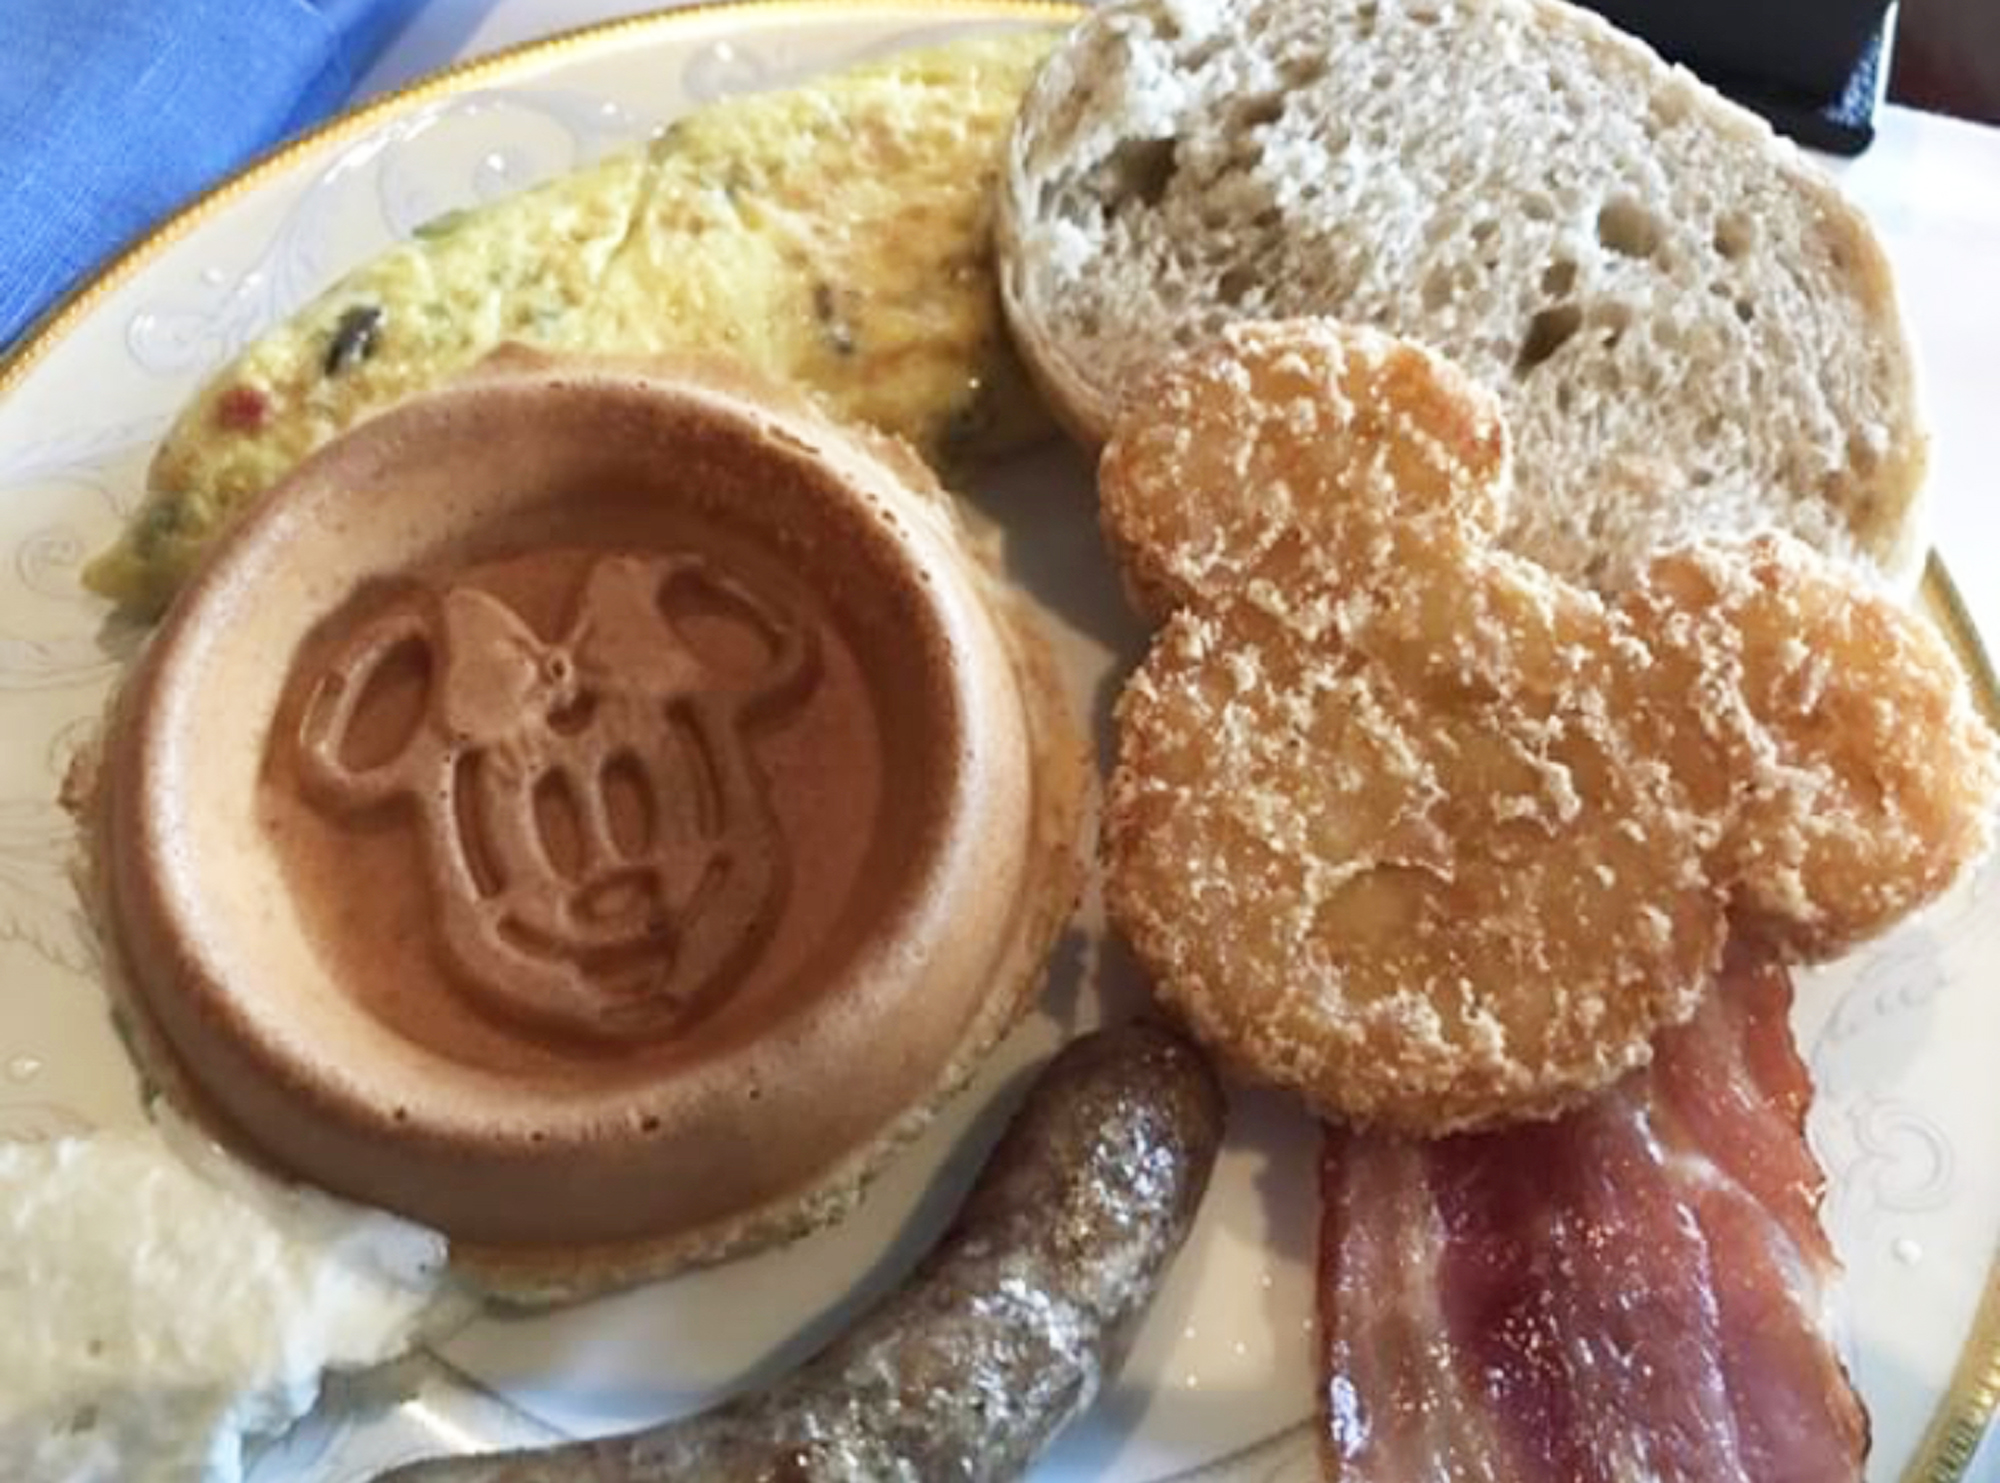 Hashbrown (attached; credit @fastpass_shopping)